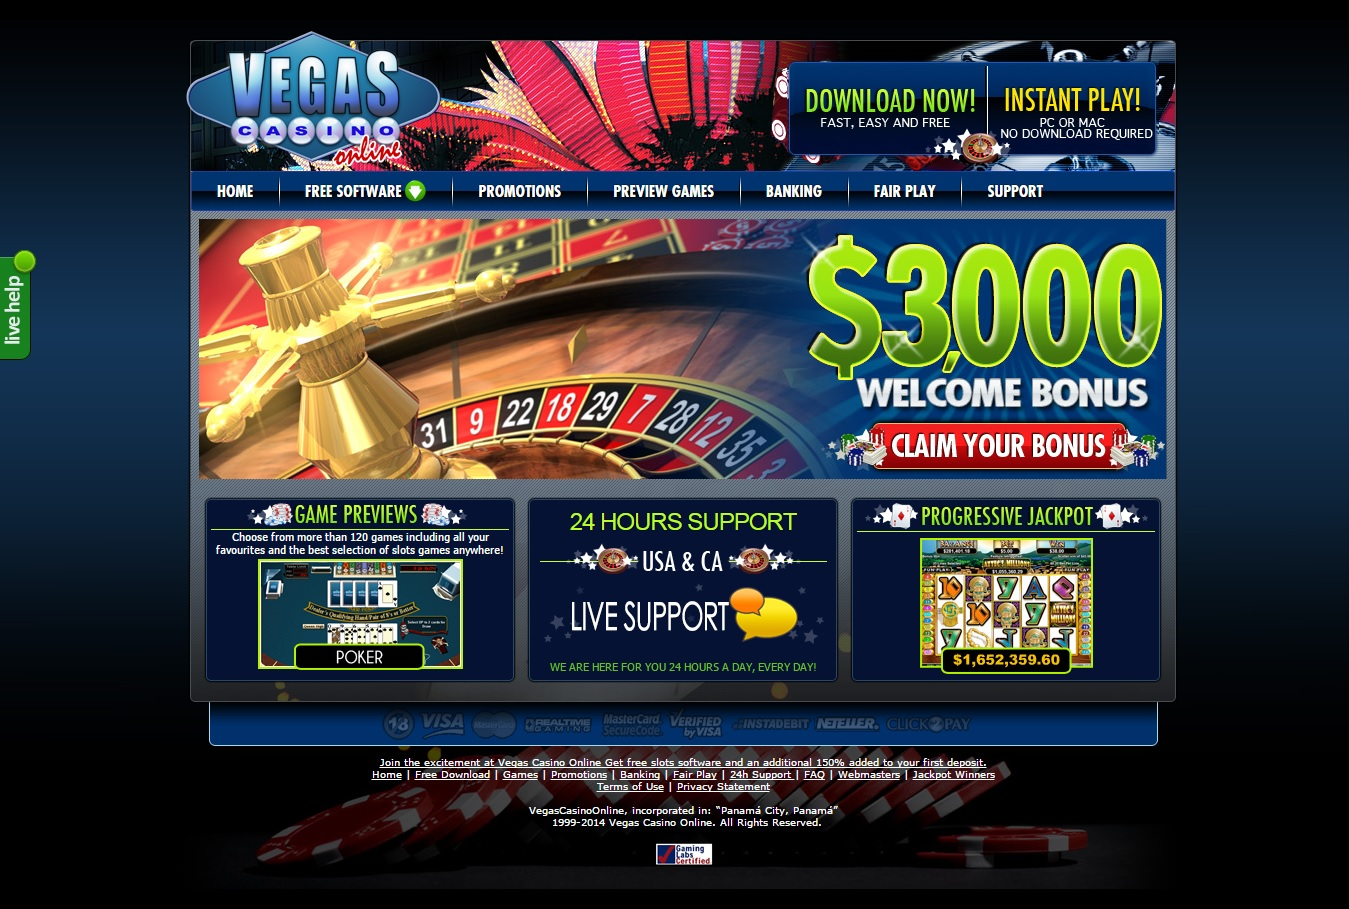 real money online casinos - 2